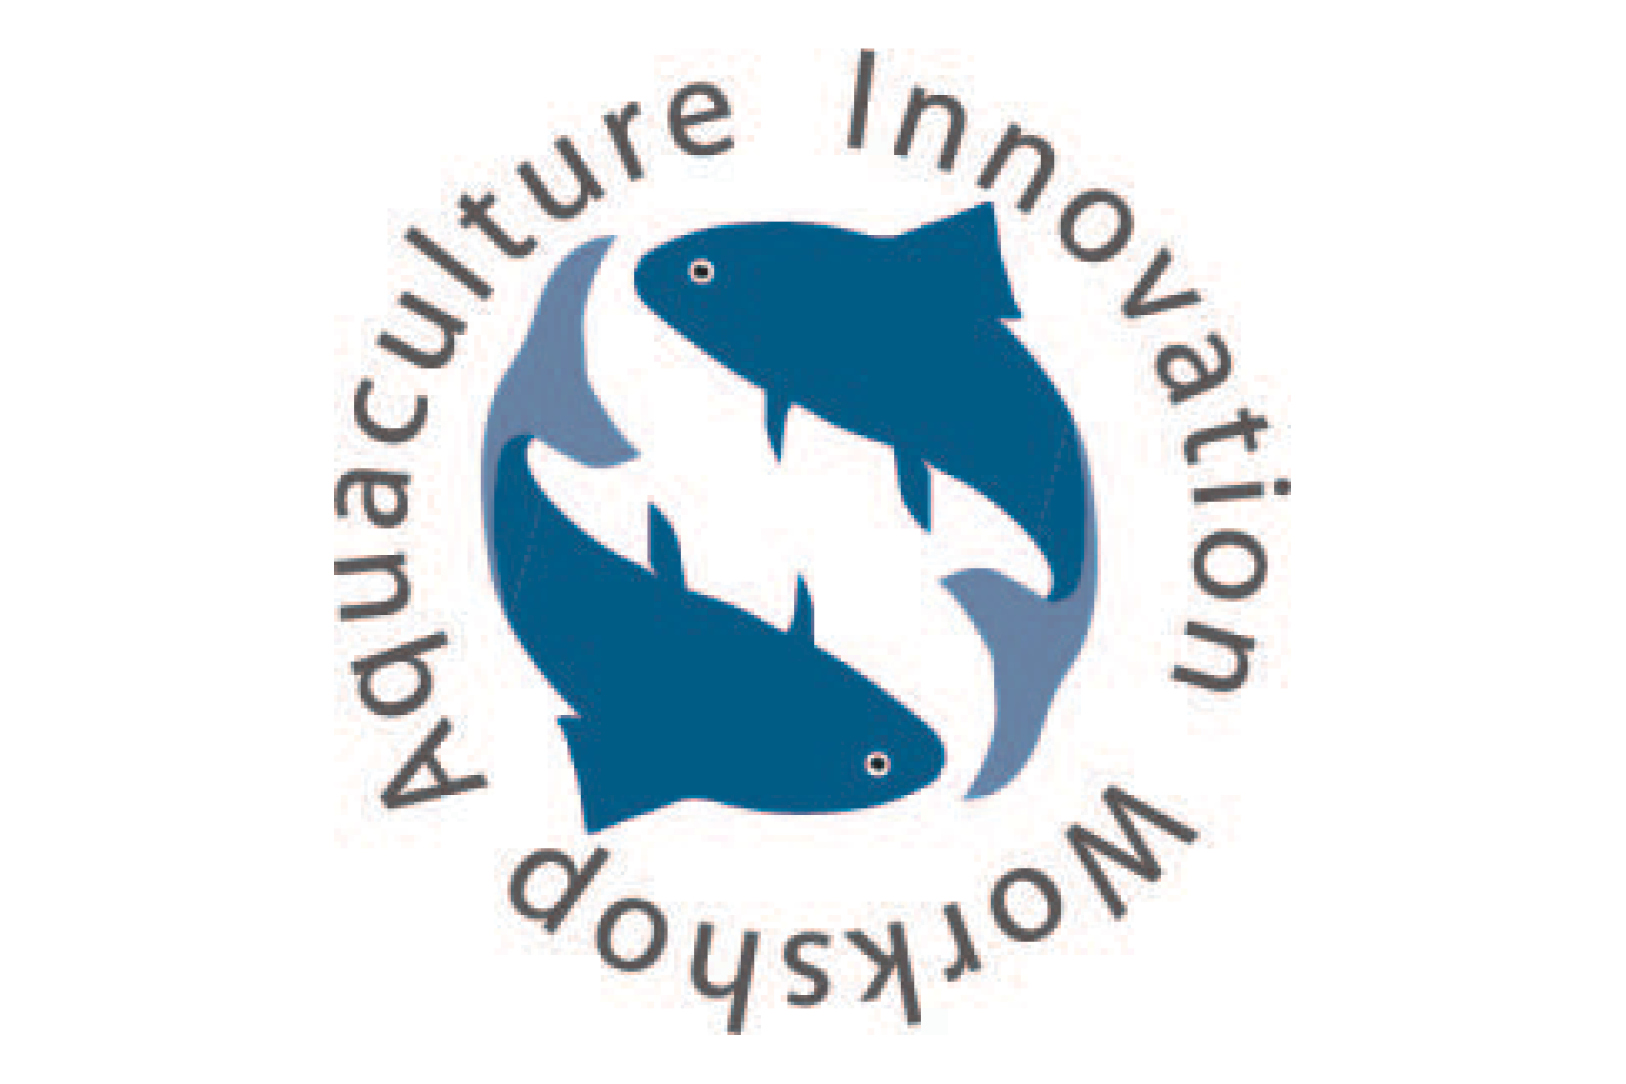 78589267f1 The annual Aquaculture Innovation Workshop (AIW) is dedicated to the  presentation of the latest developments in sustainable aquaculture.